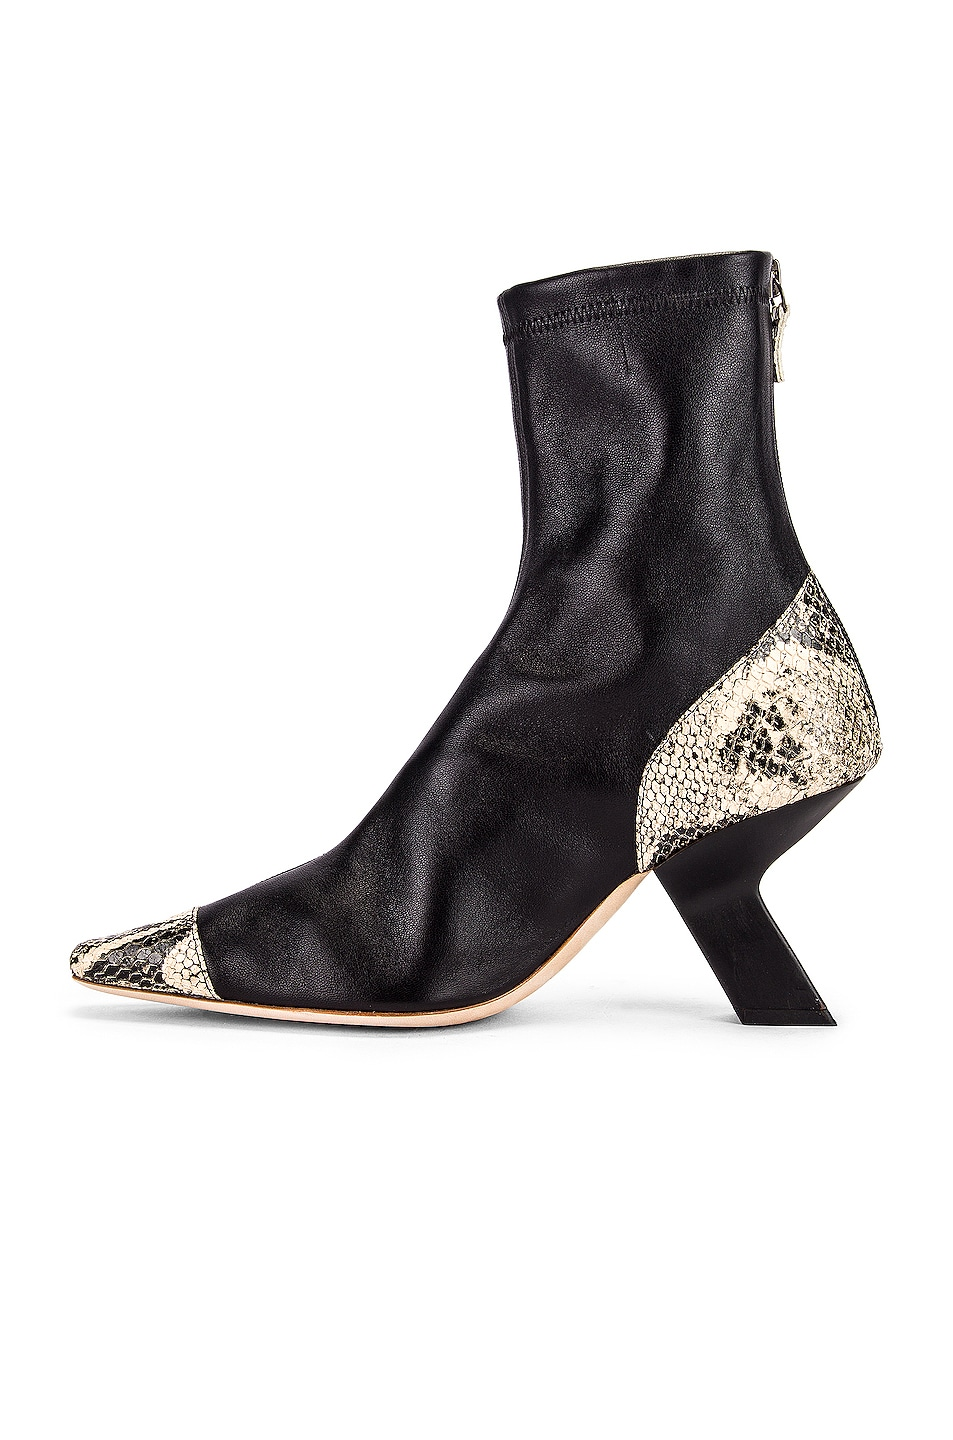 Image 5 of REJINA PYO Marley 80 Boot in Black & Boa Beige